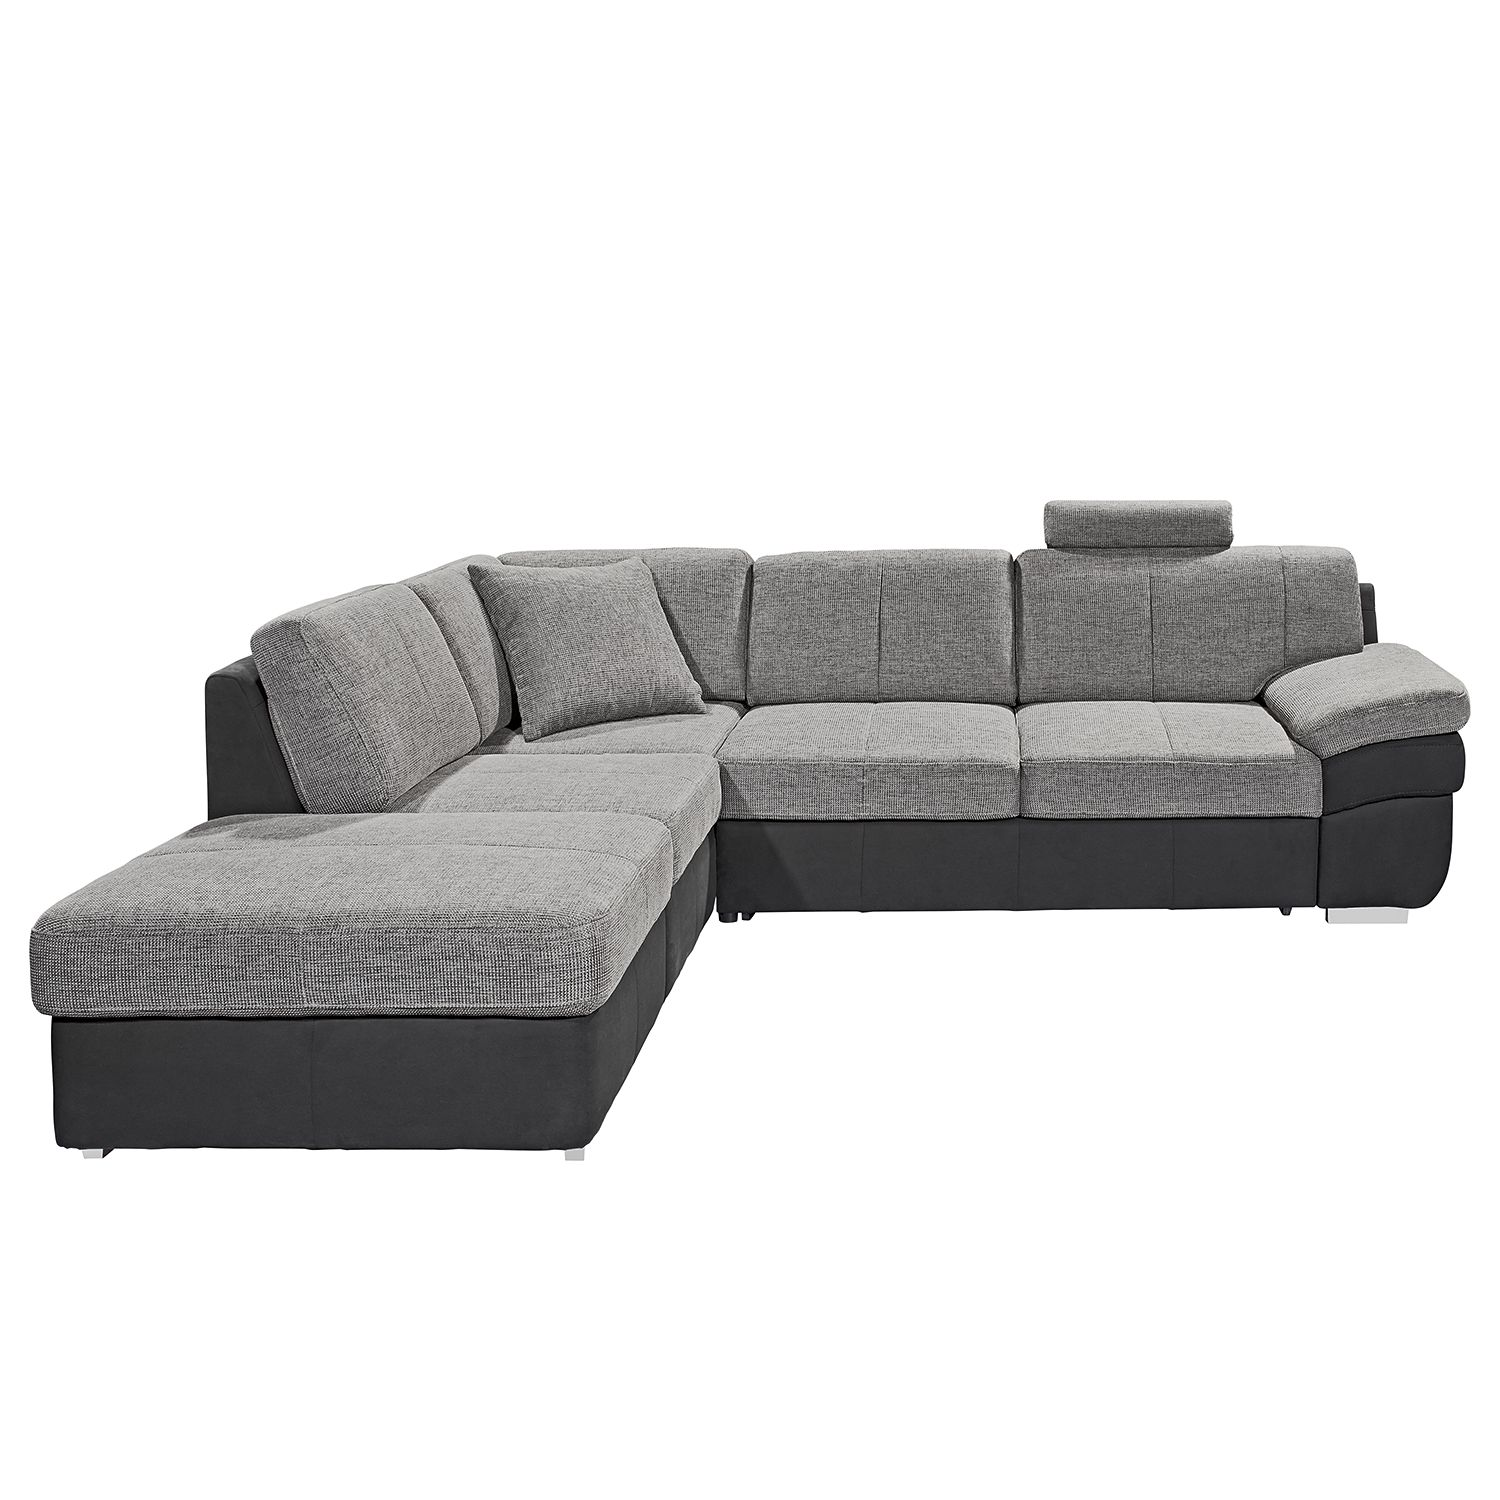 hussensofa mit schlaffunktion landhaus ecksofa mit. Black Bedroom Furniture Sets. Home Design Ideas